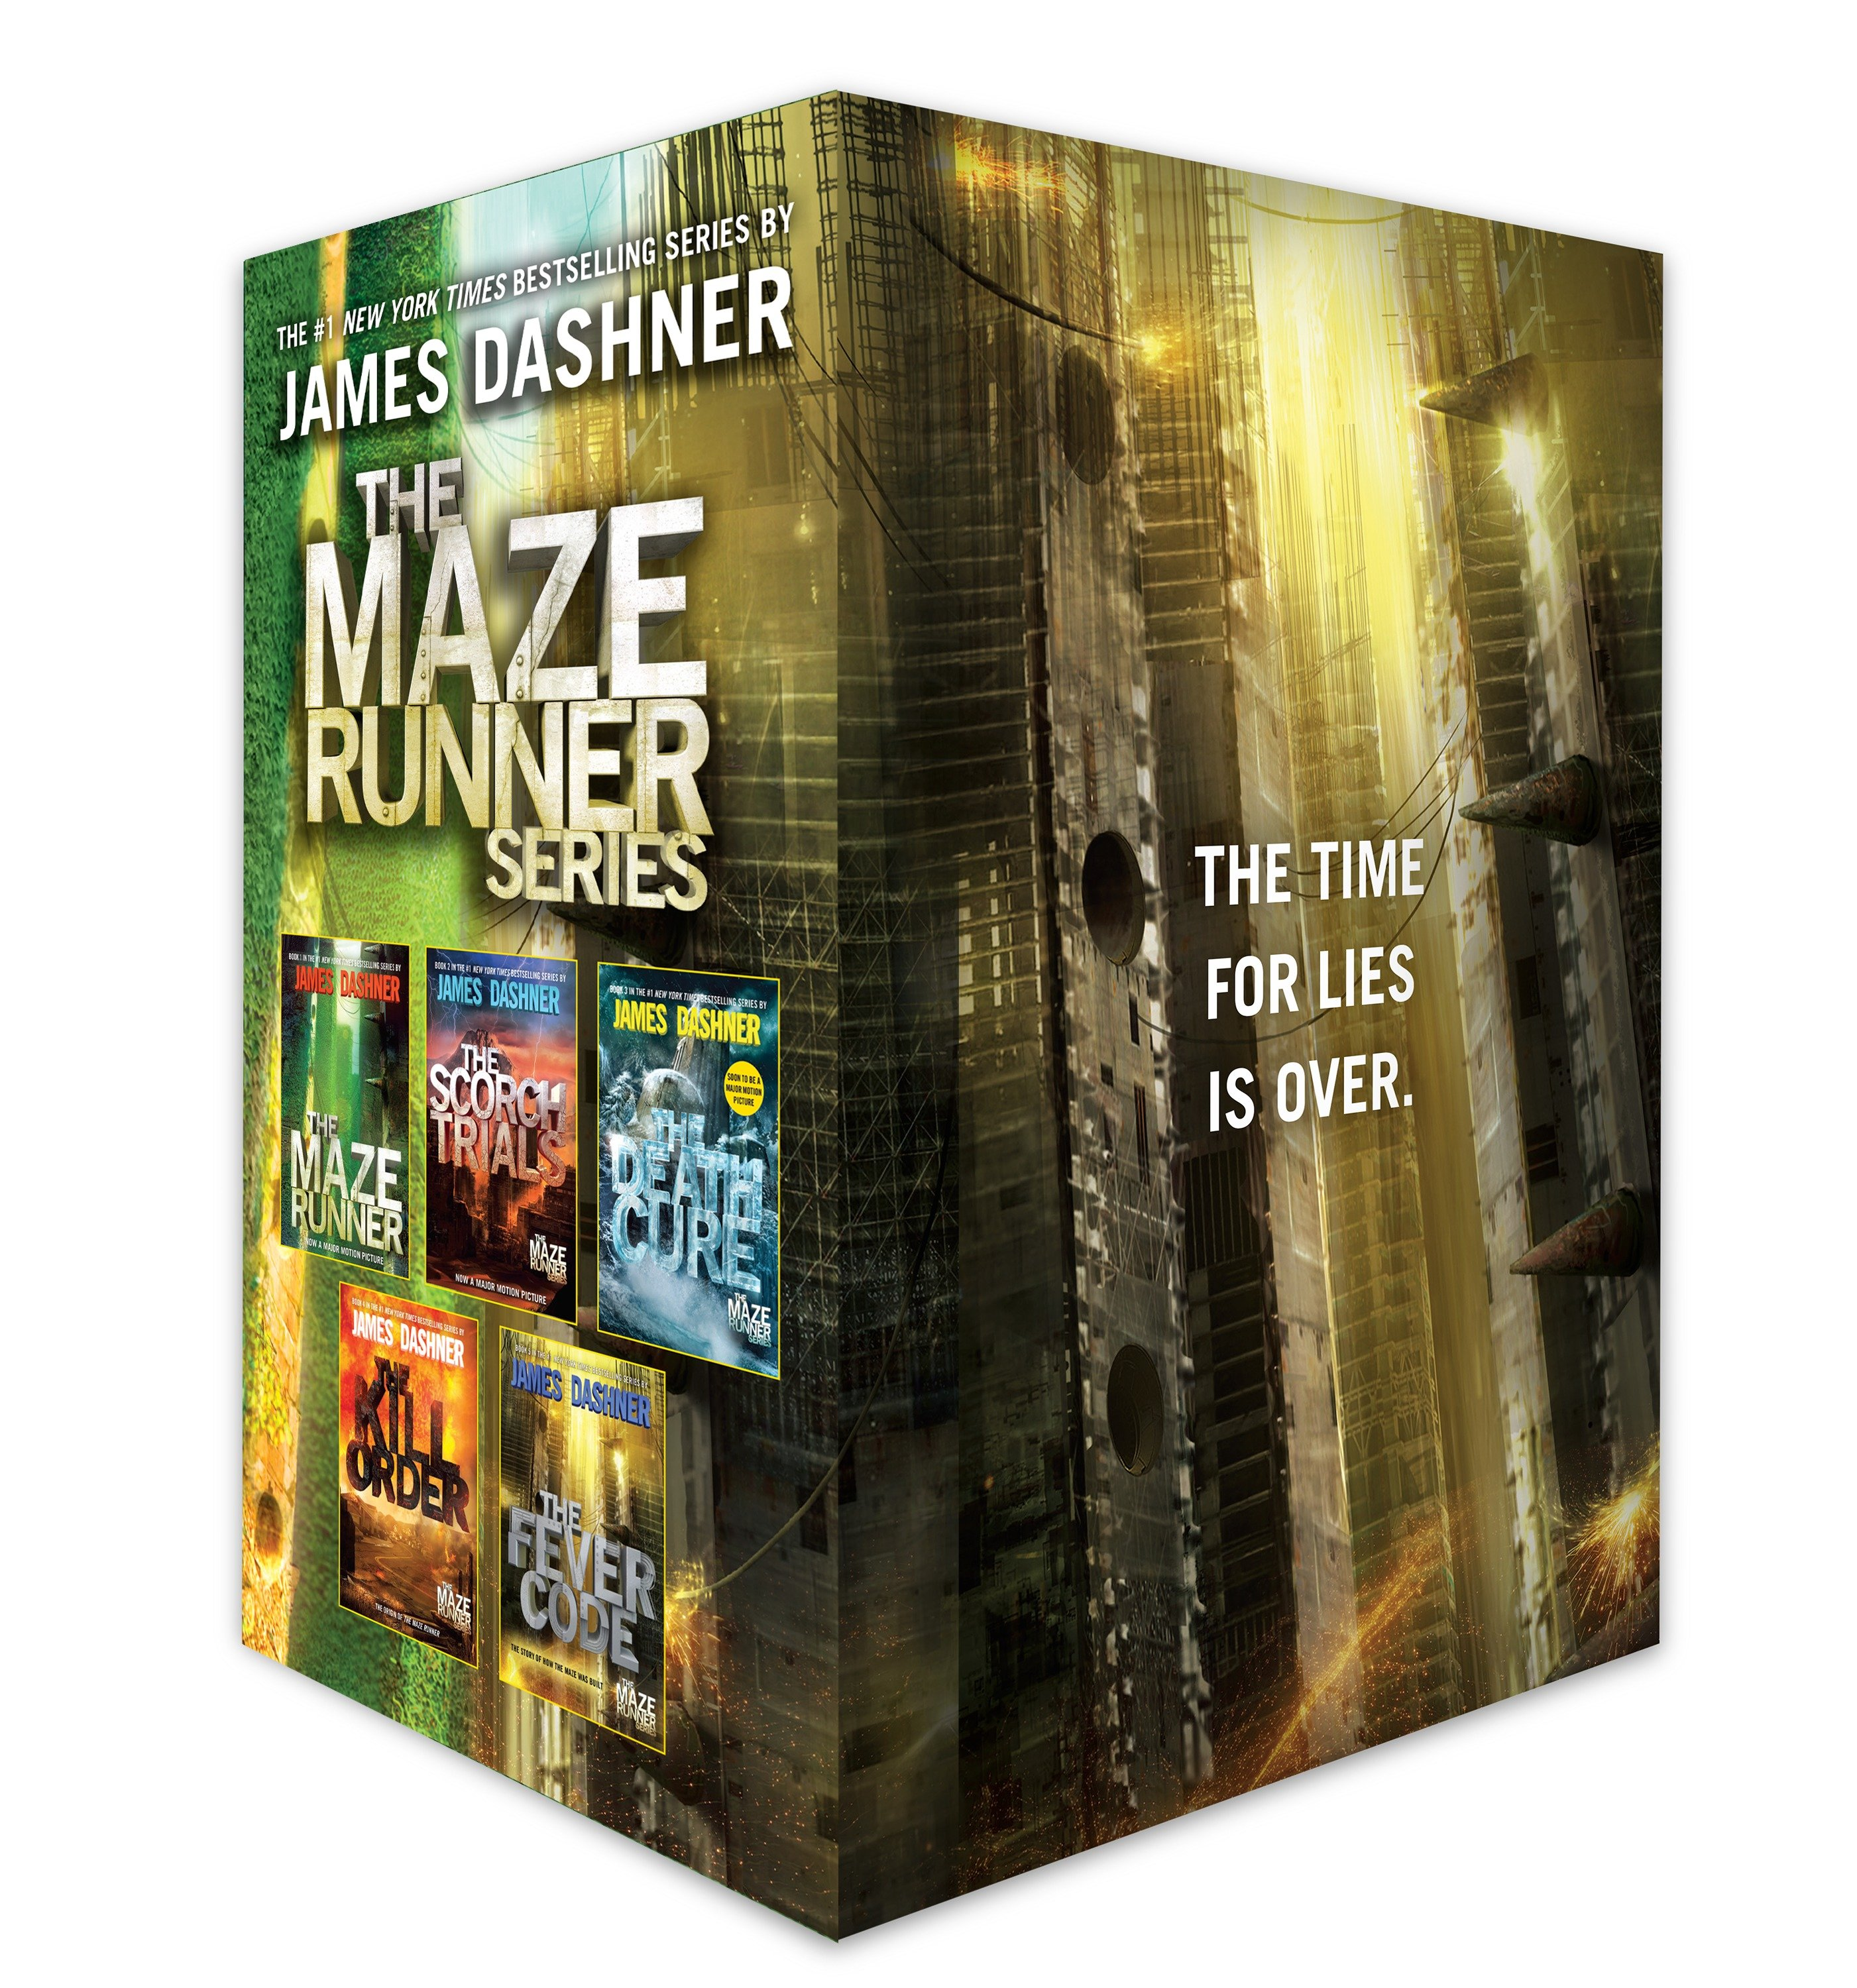 The Maze Runner Series Complete Collection Boxed Set (5-Book) (Paperback)